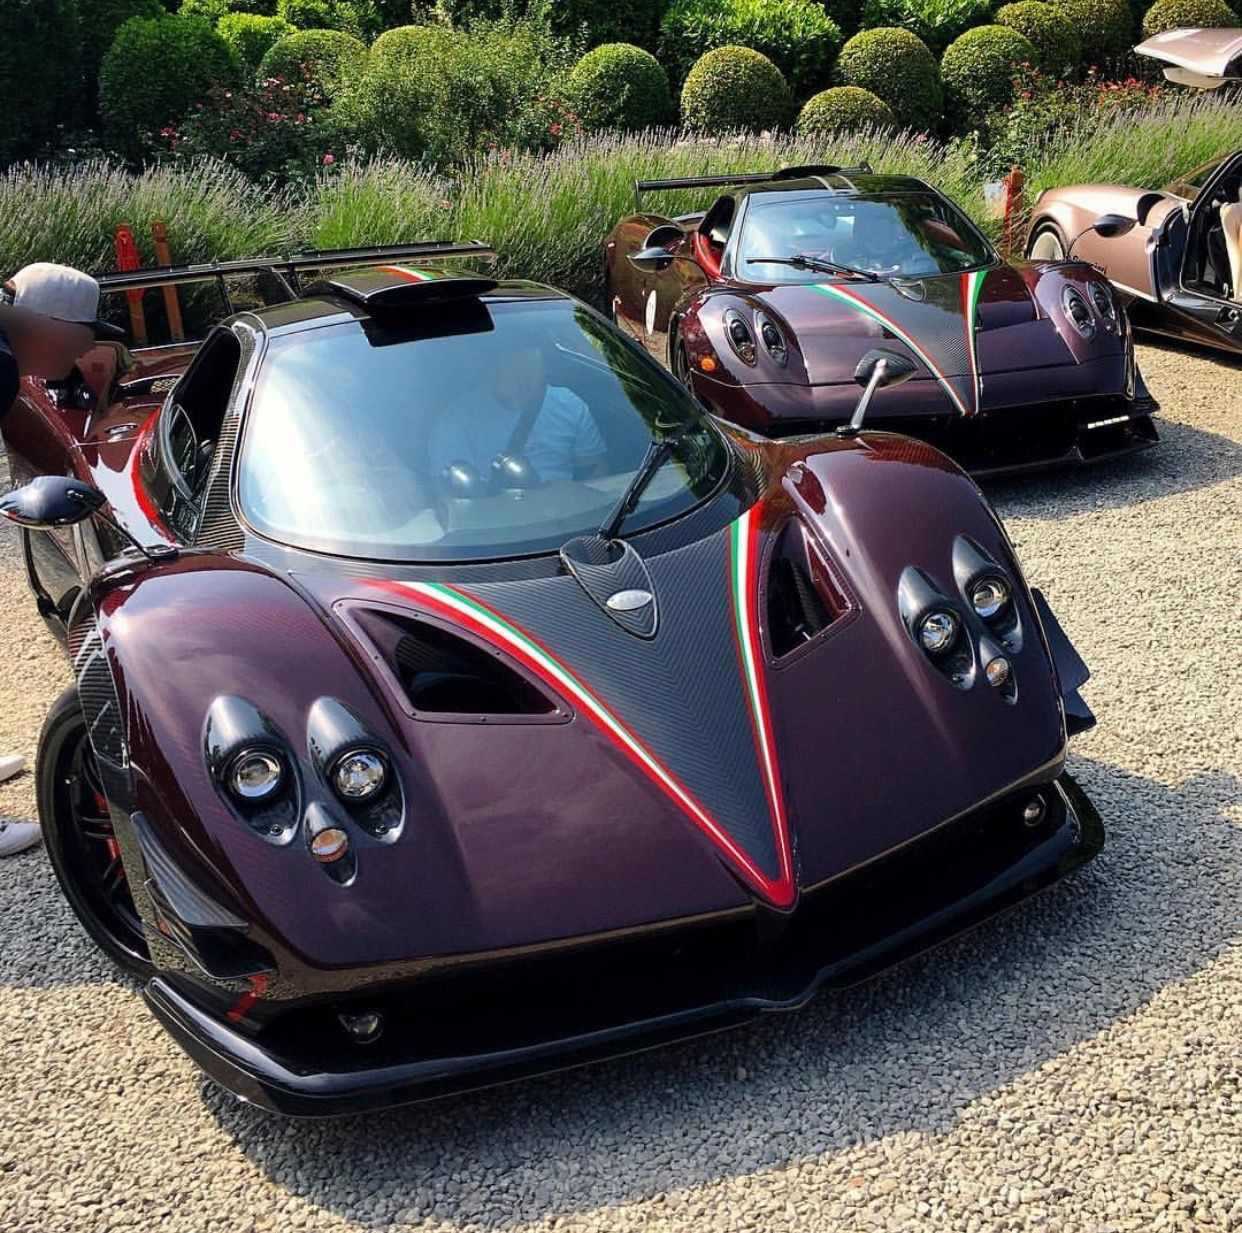 Sports Cars Luxury, Pagani Huayra